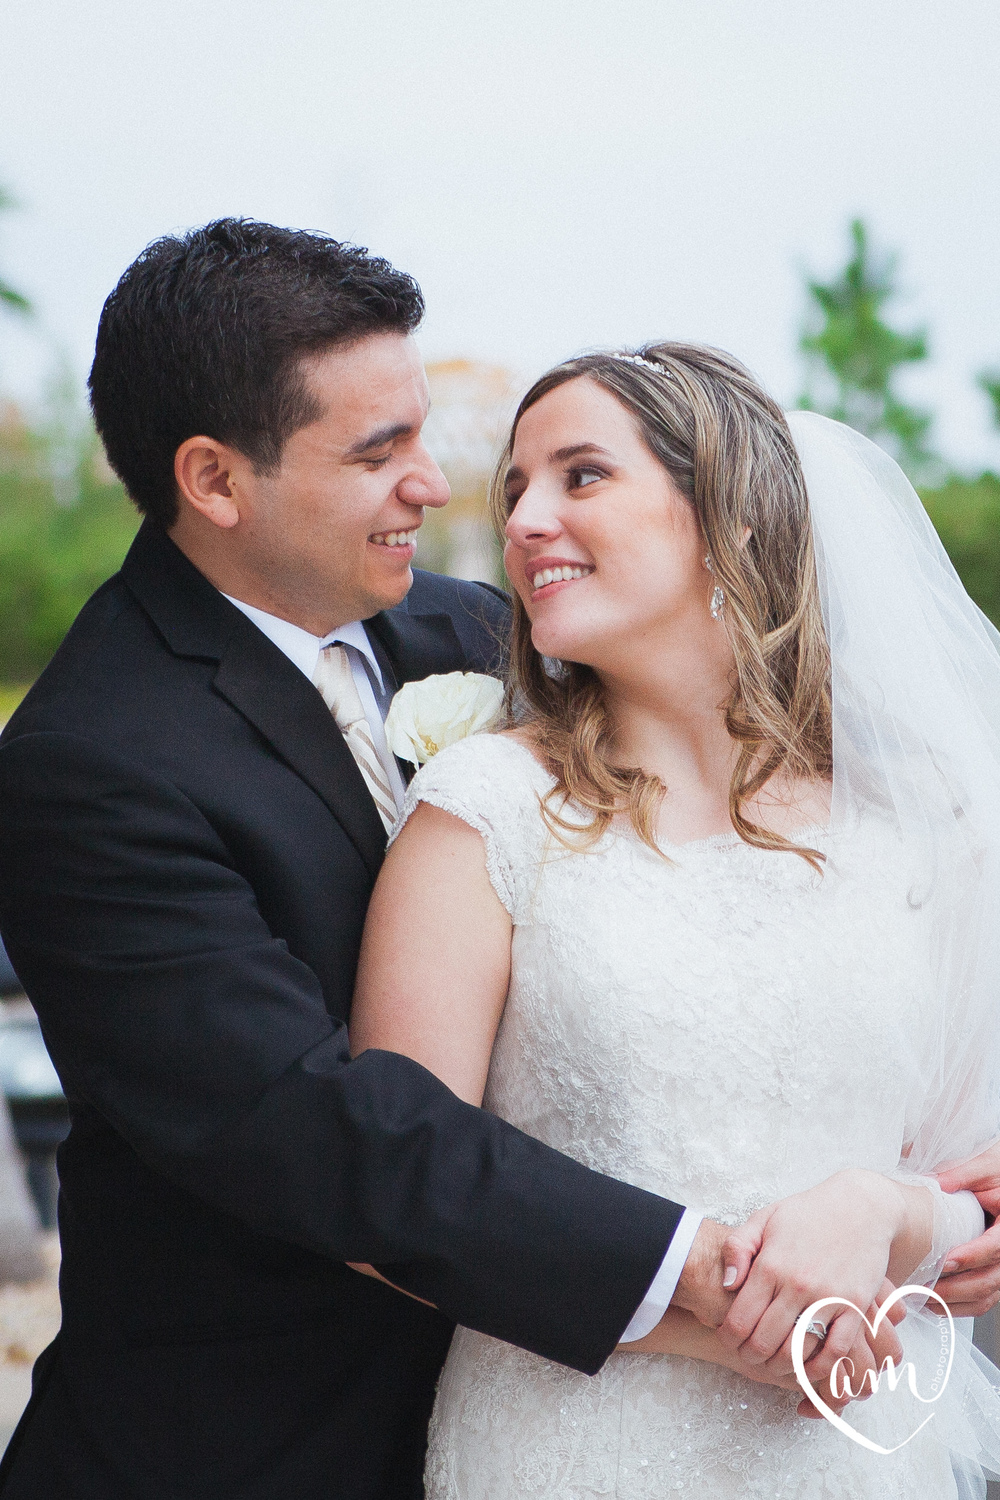 Wedding Portraits. Photo by Amanda Mejias Photography: Destination Wedding Photographer.